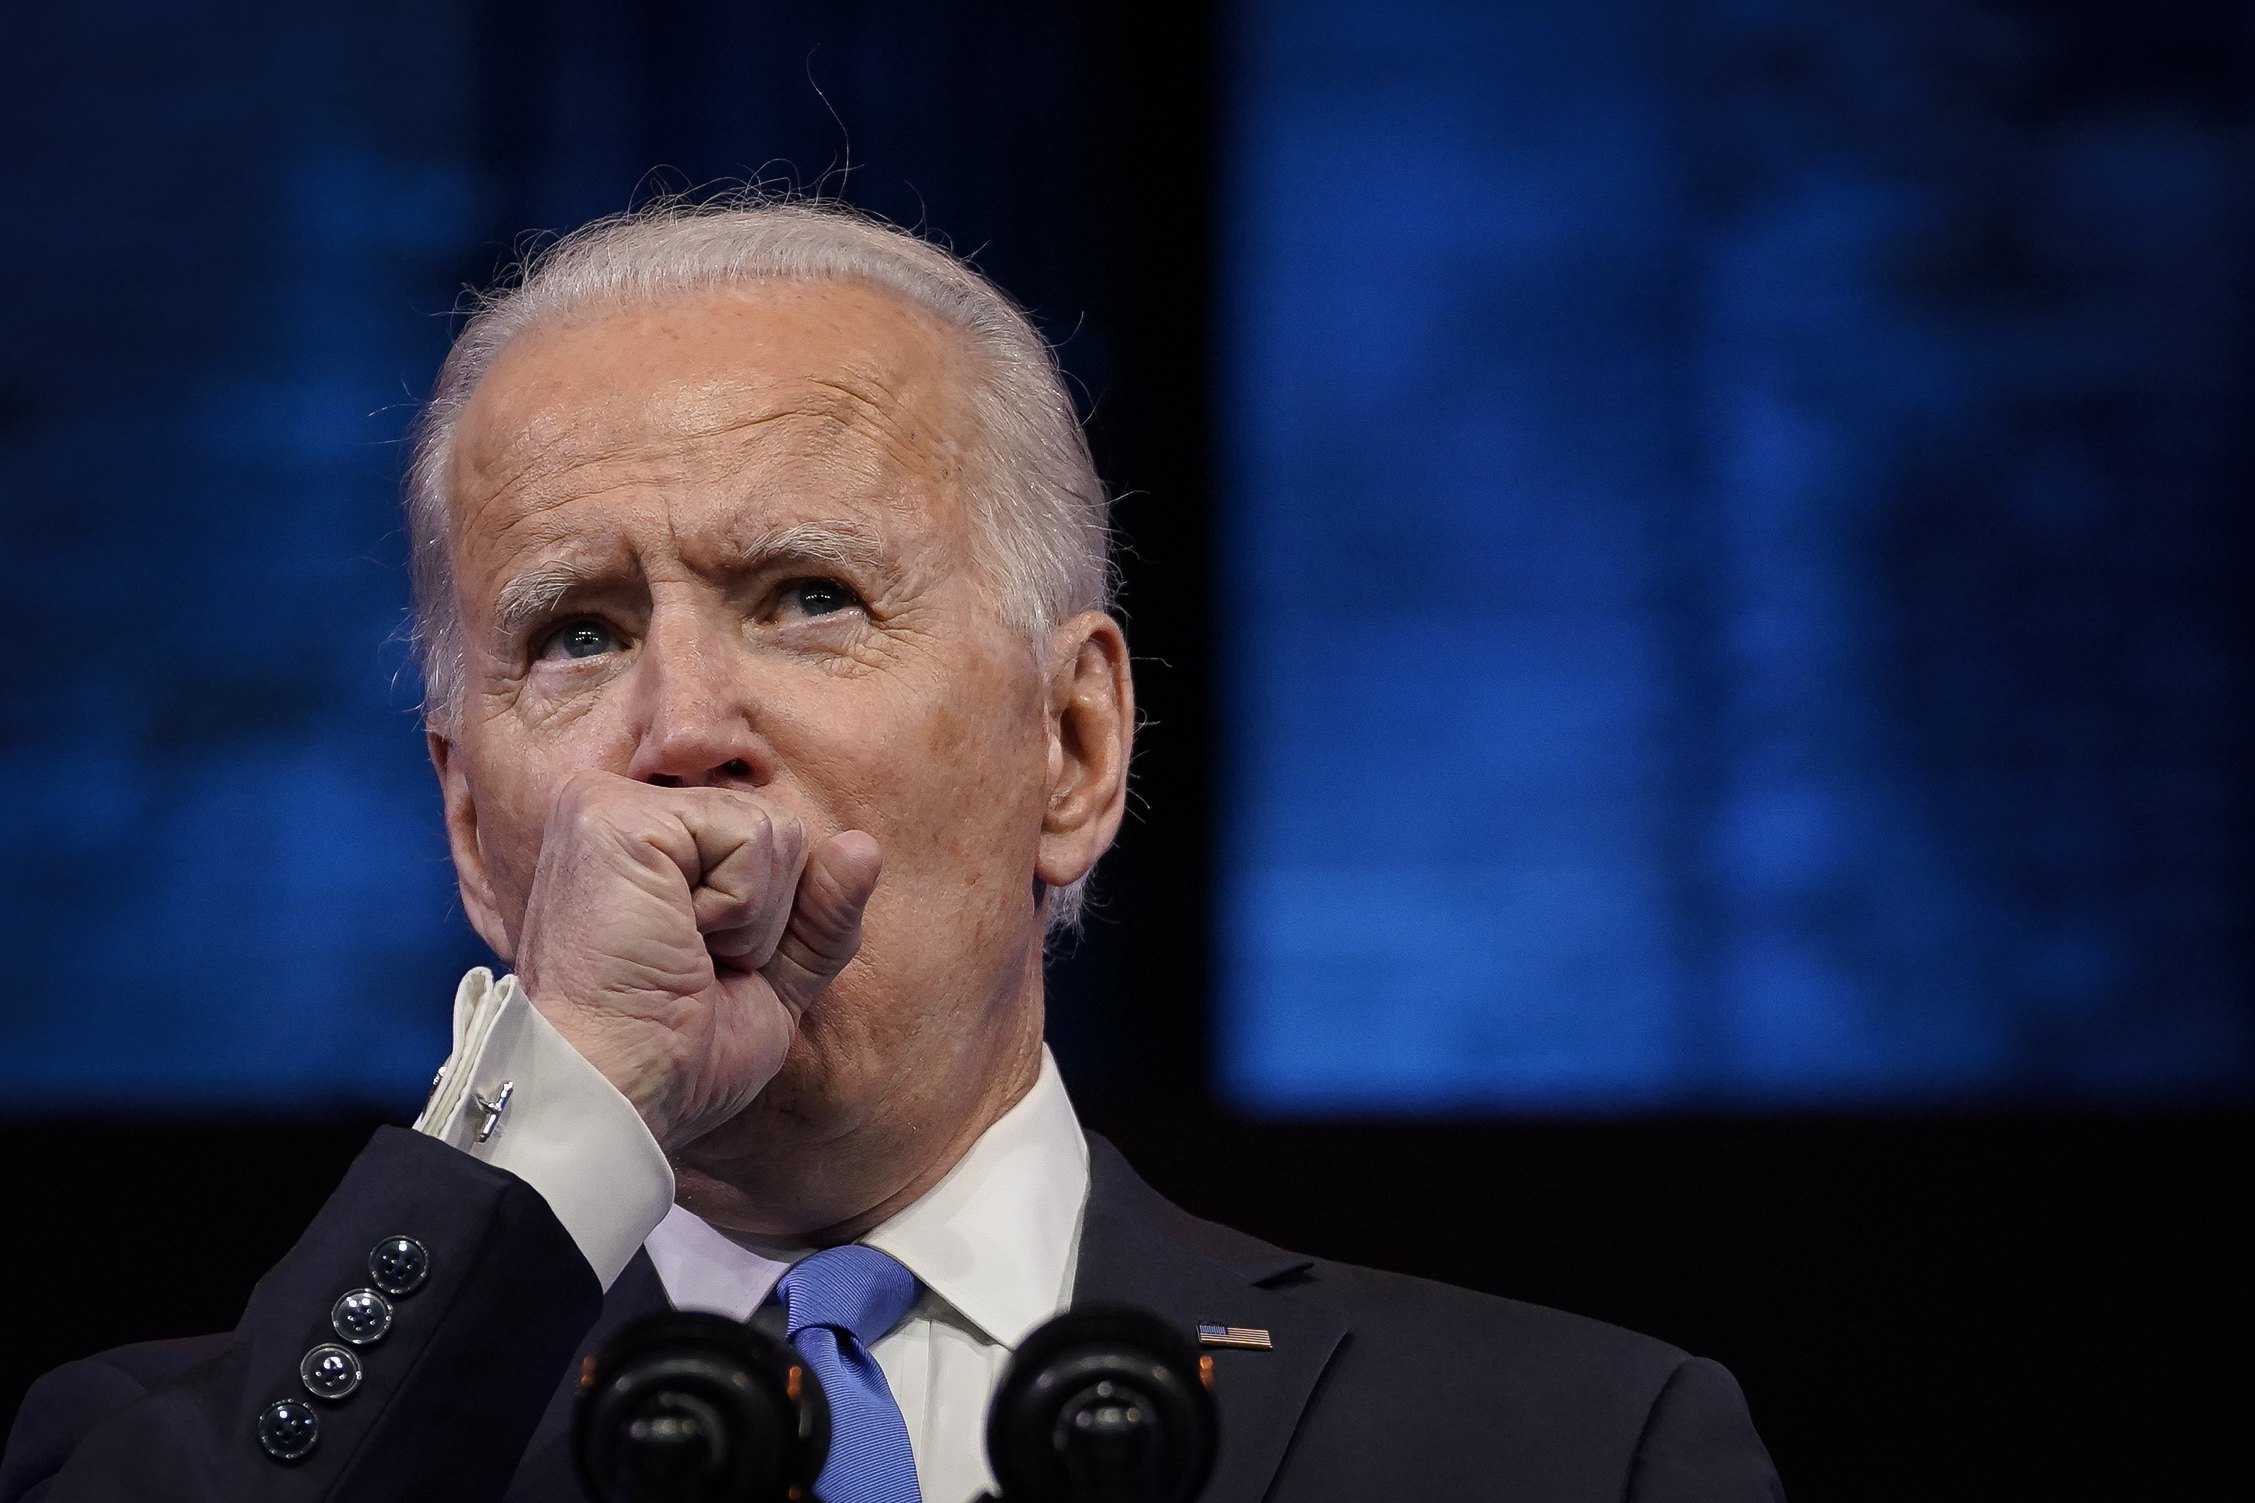 Joe Biden stopped multiple times during a Monday speech to clear his throat, prompting a response from some social media users. DREW ANGERER/GETTY